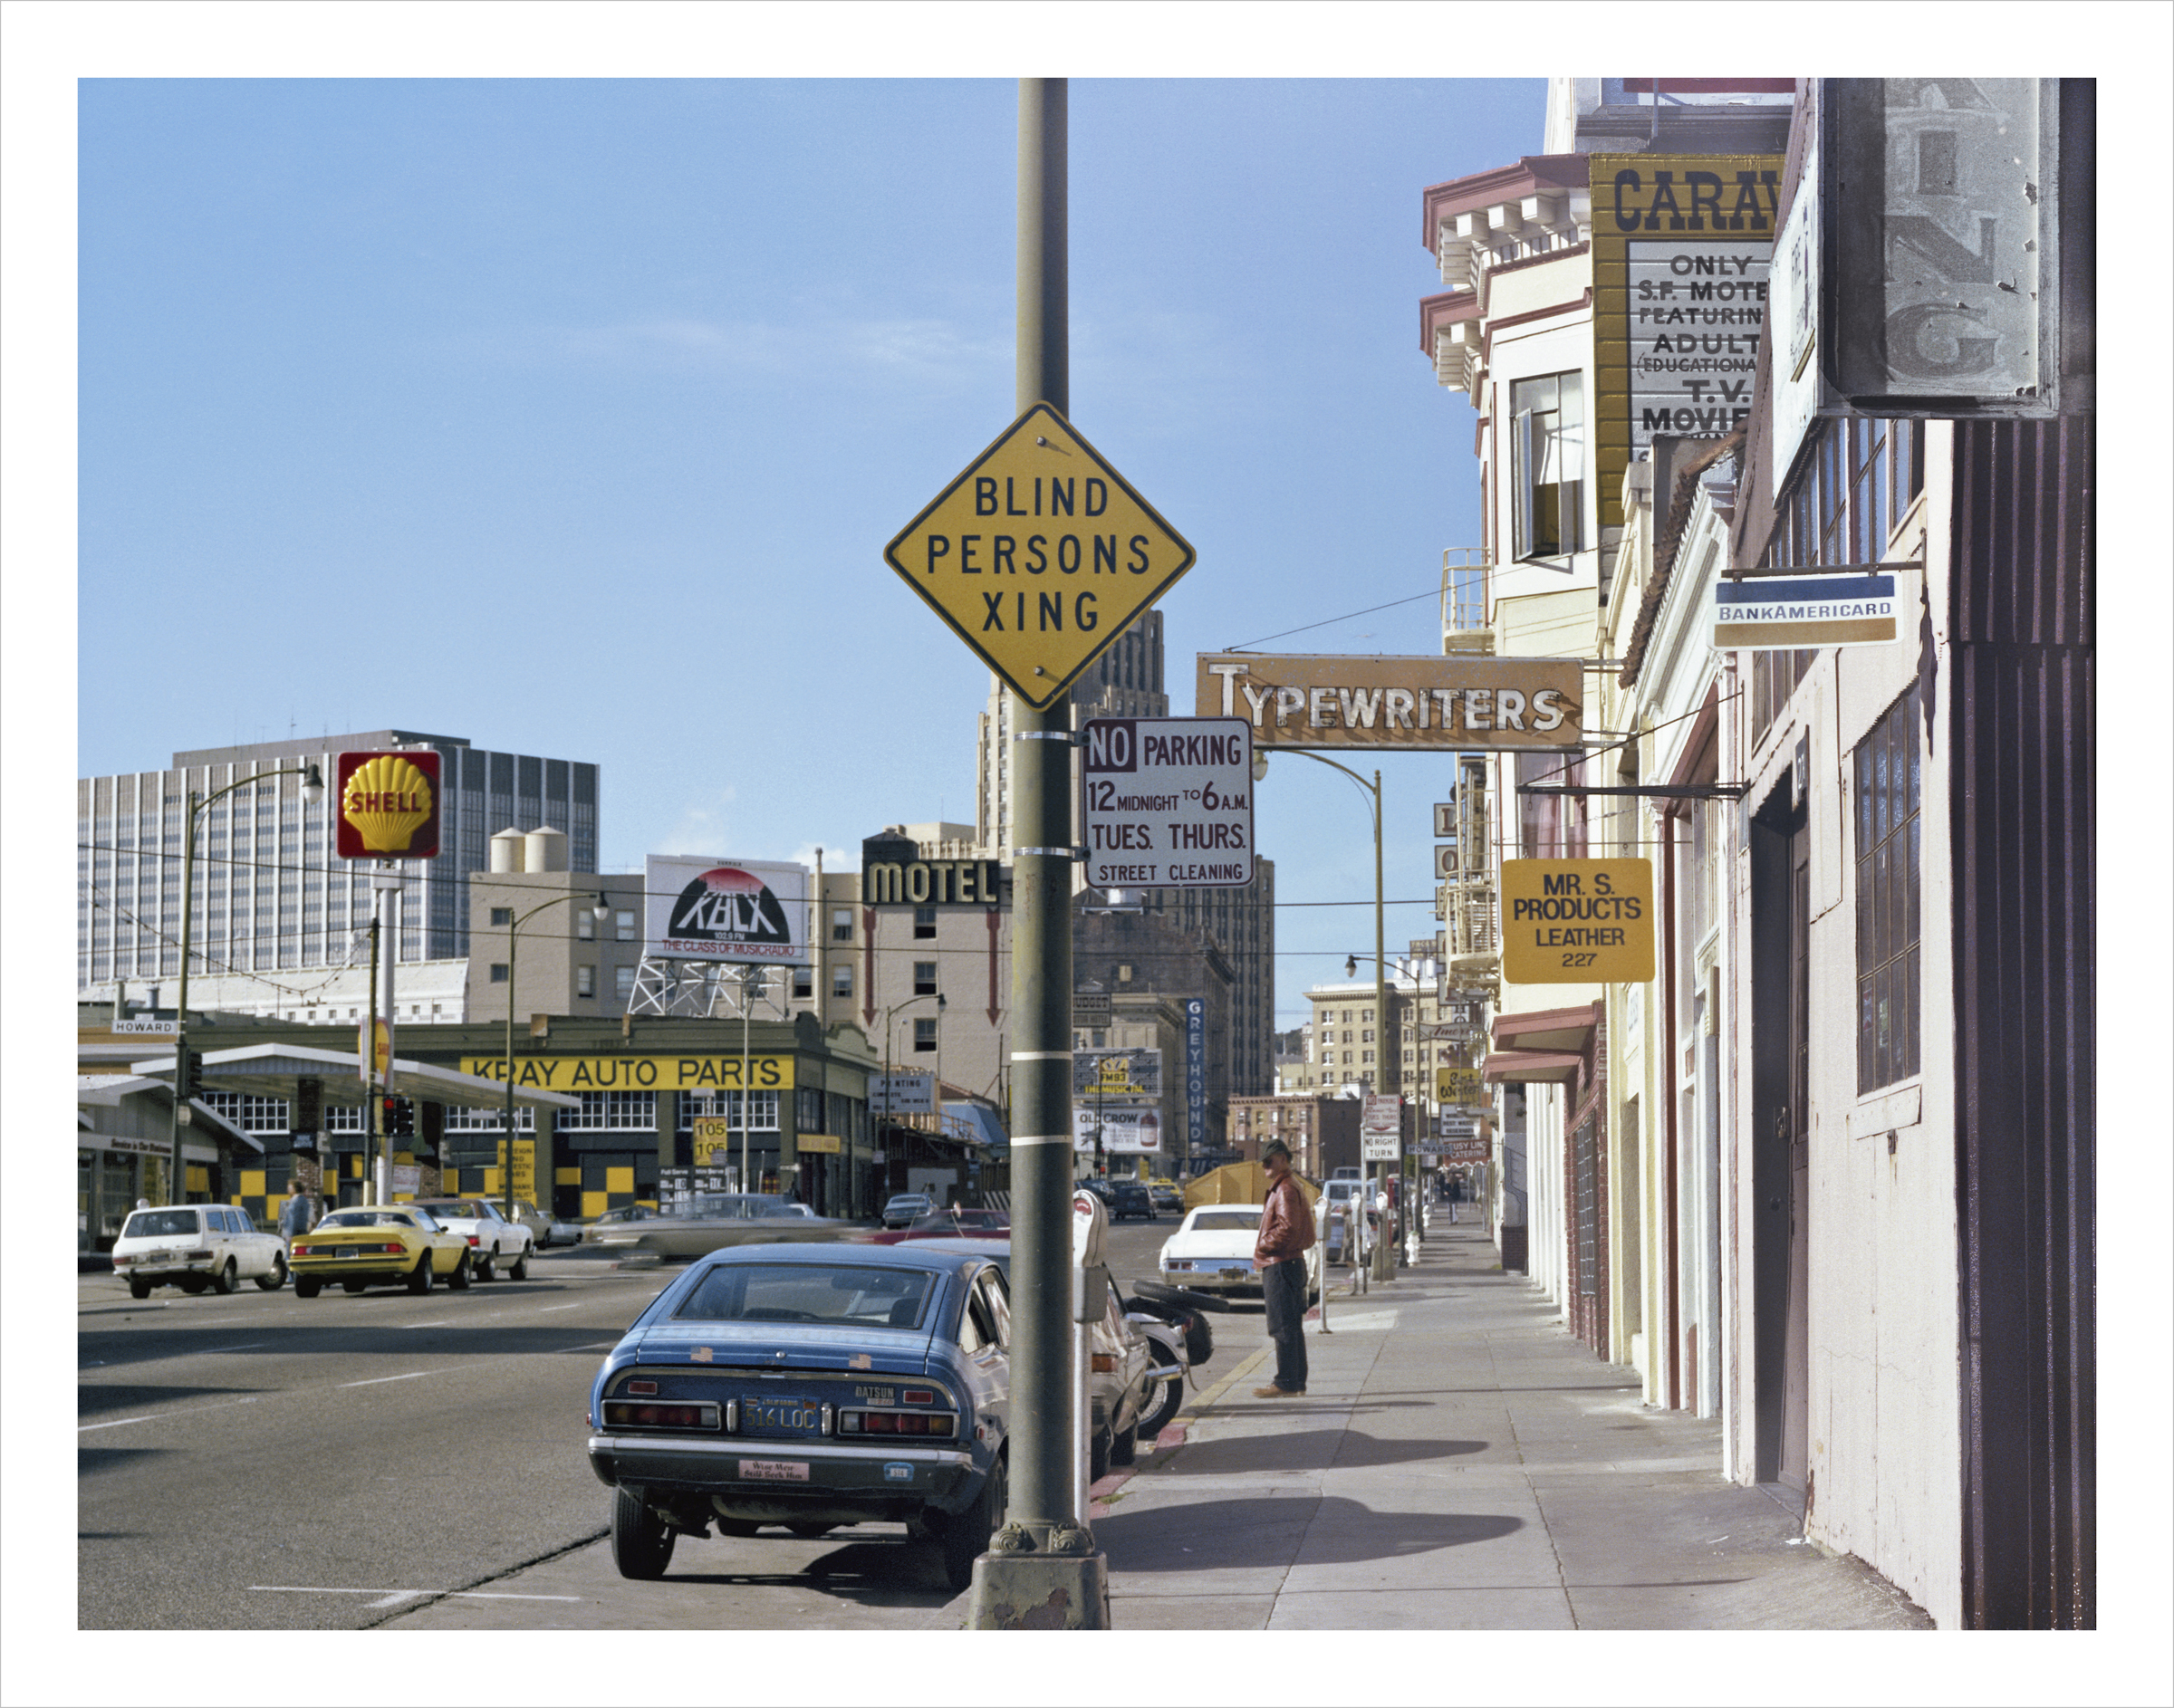 JANET DELANEY 7th at Howard Street, 1979 Archival Pigment Print, 2016 16 x 20 inches, edition of 5 20 x 24 inches, edition of 2 30 x 40 inches, edition of 2